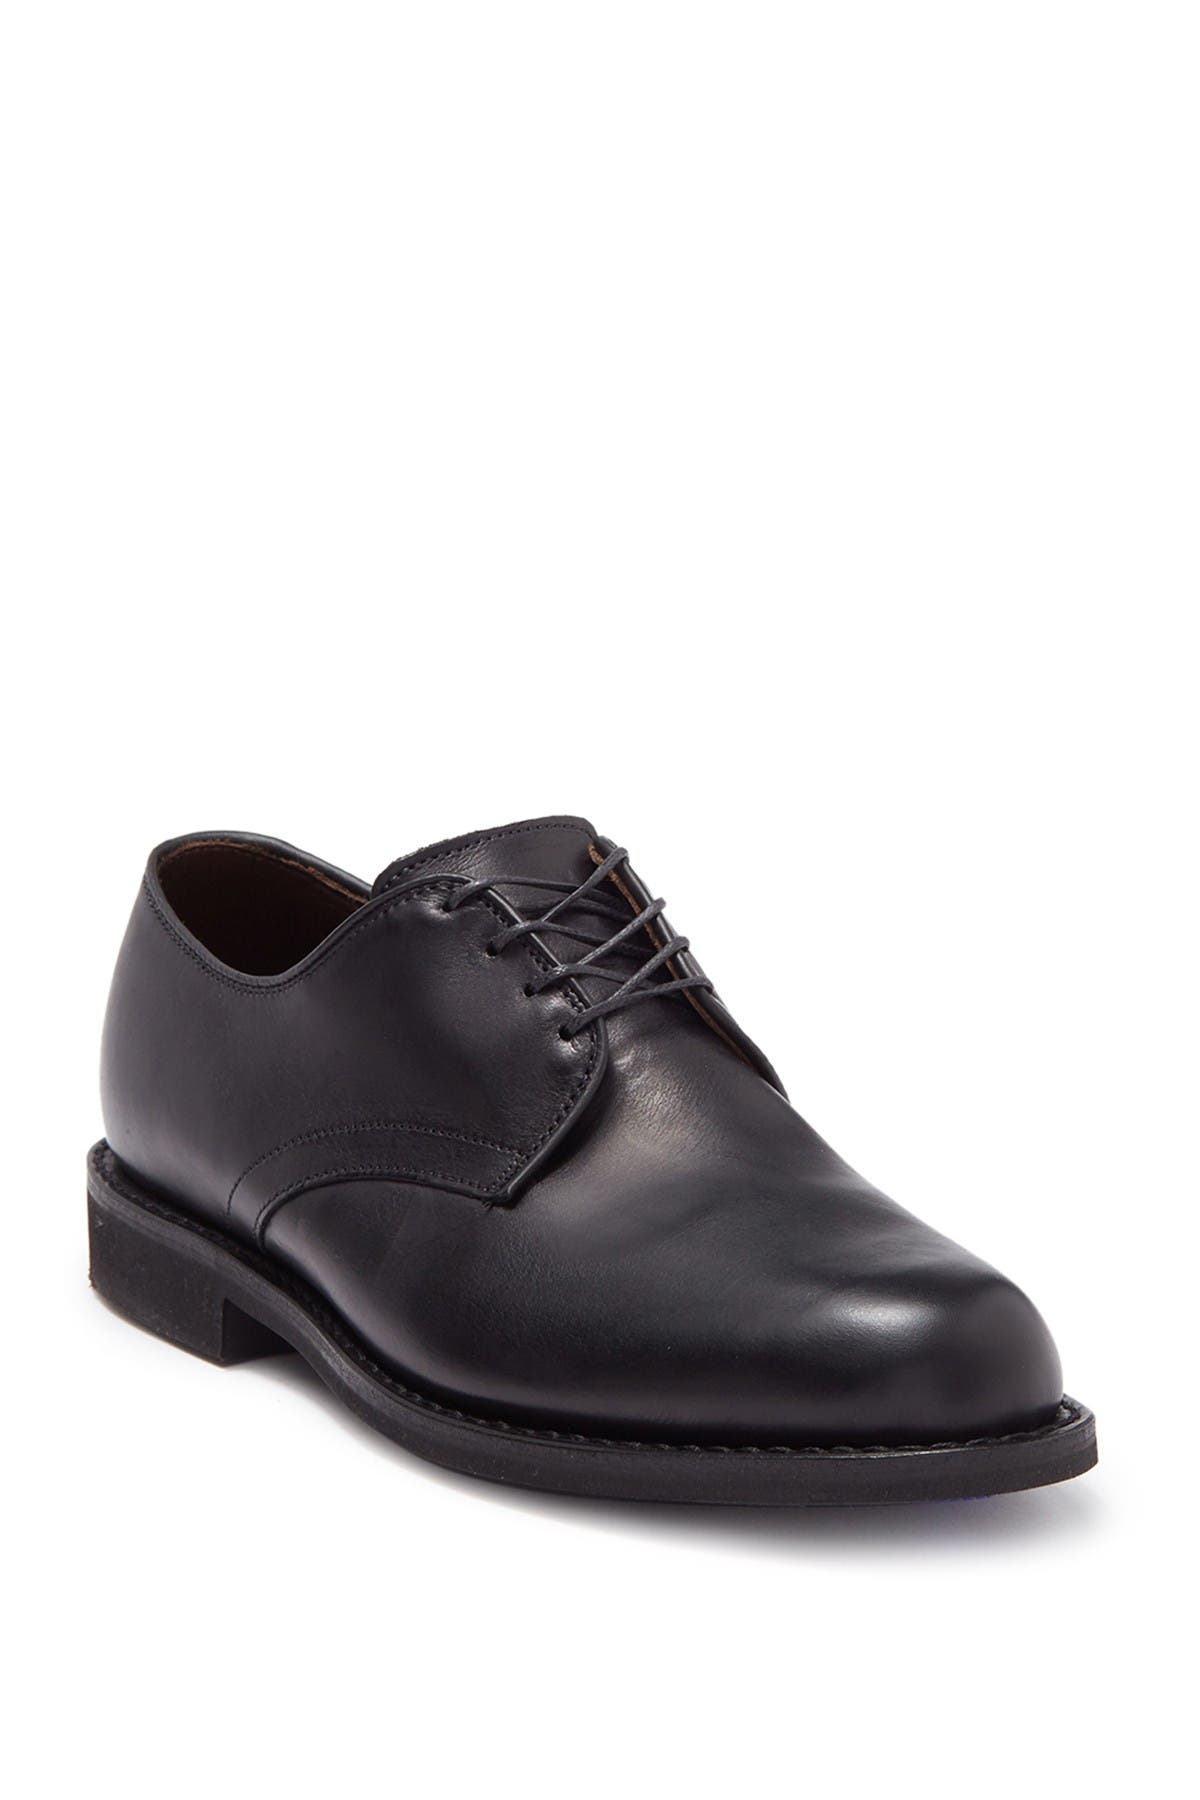 Image of Allen Edmonds Chicago Derby - Wide Width Available